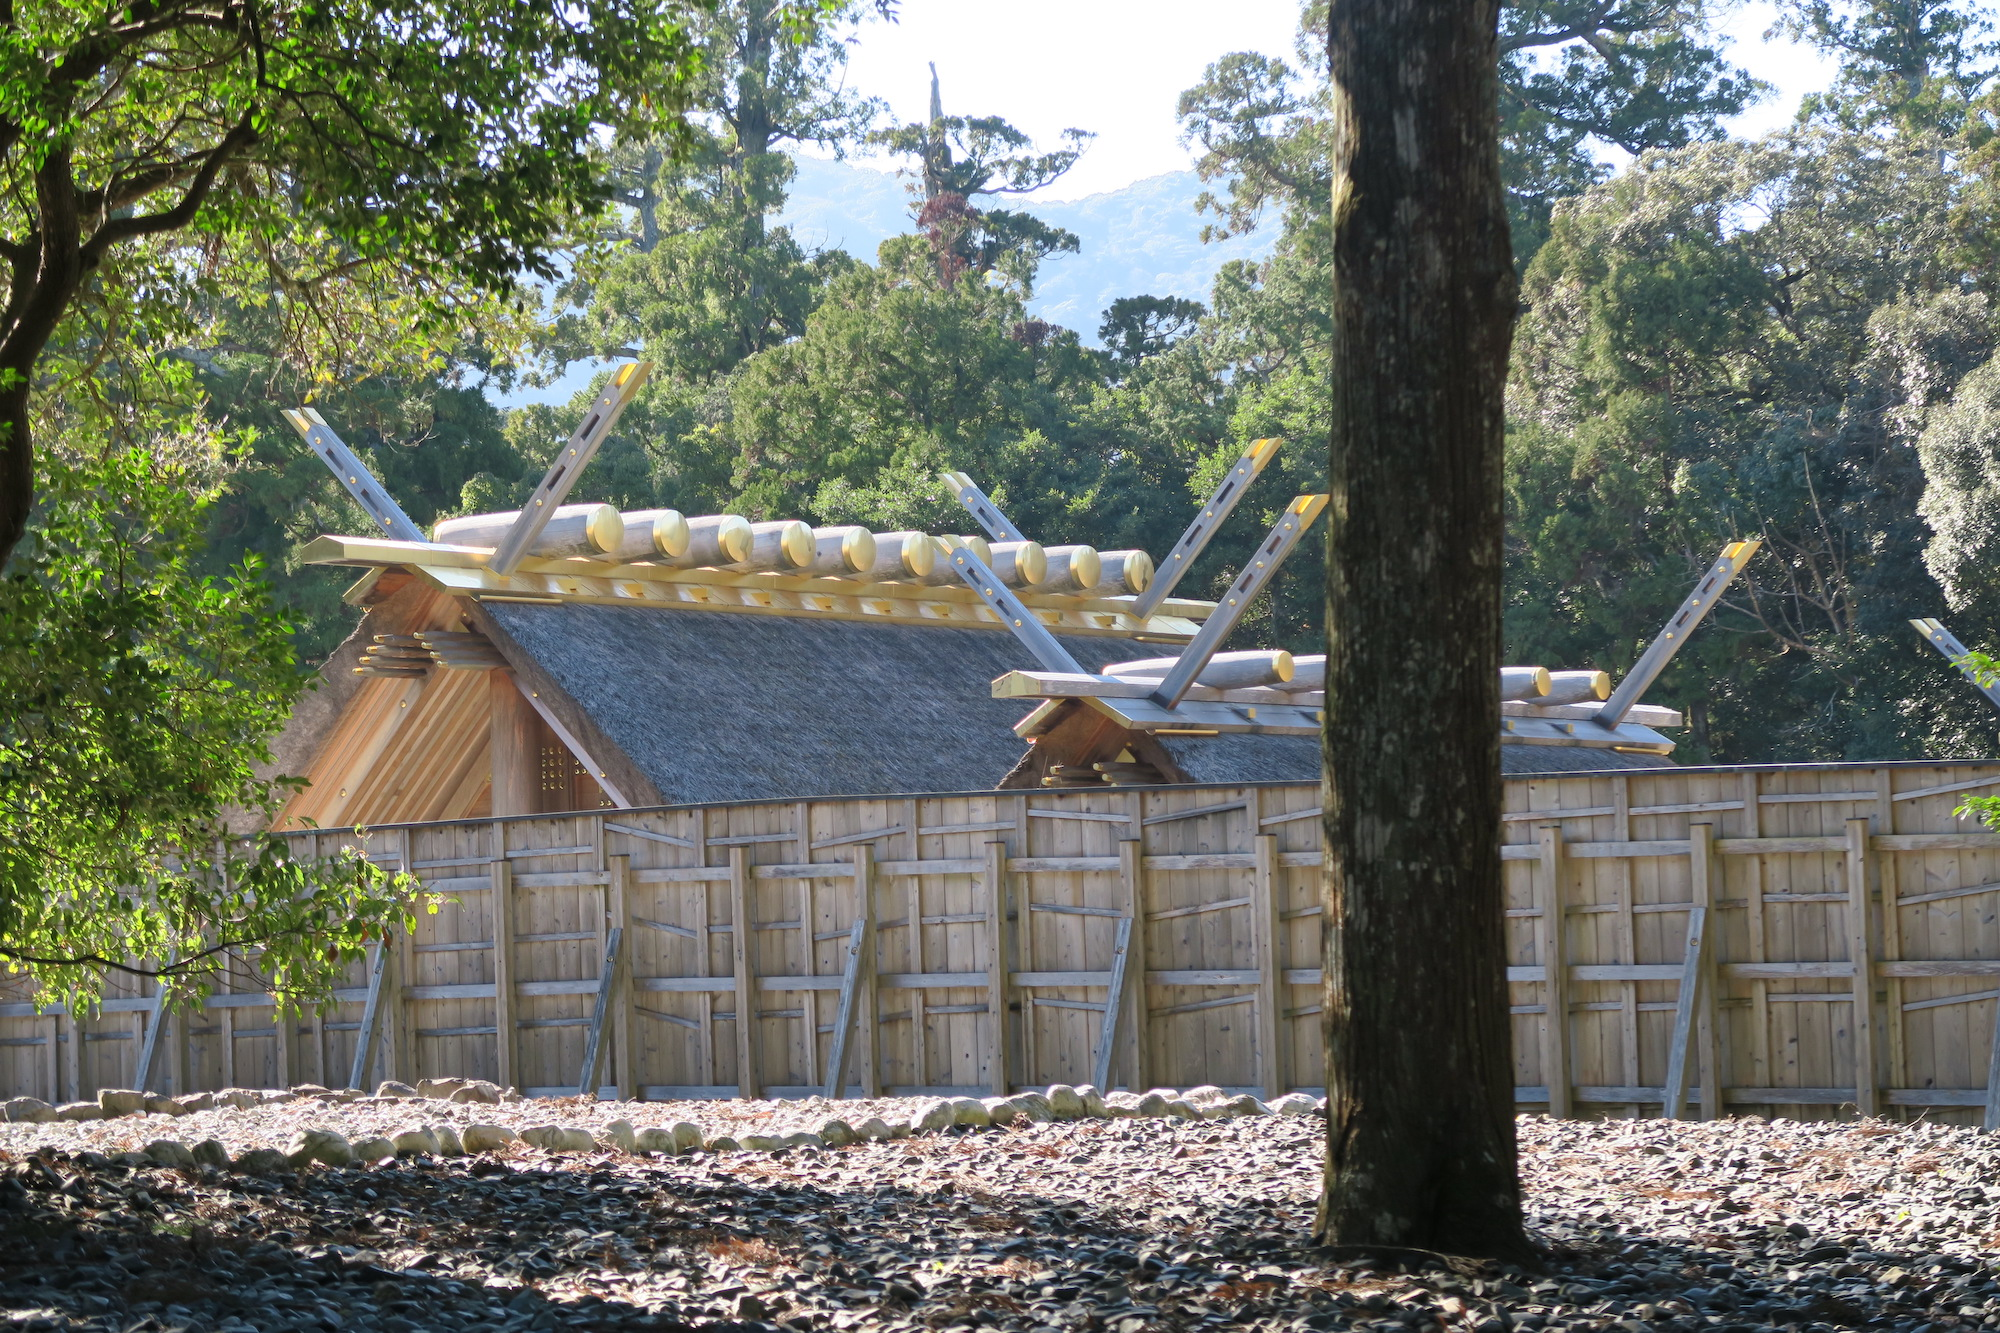 Closeup of the main Ise shrine buildings